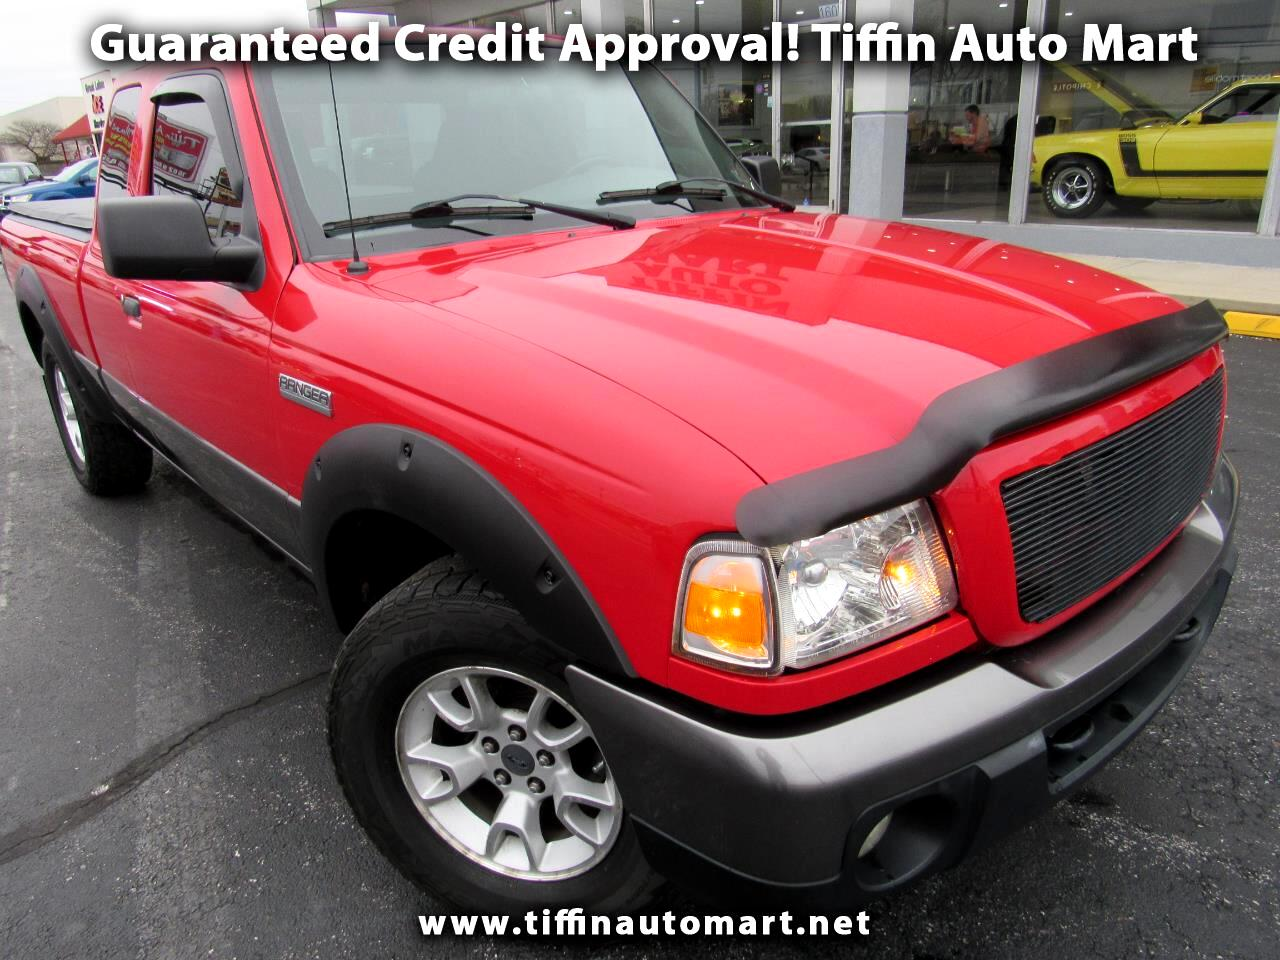 Ford Ranger XLT SuperCab 4-Door 4WD 2009